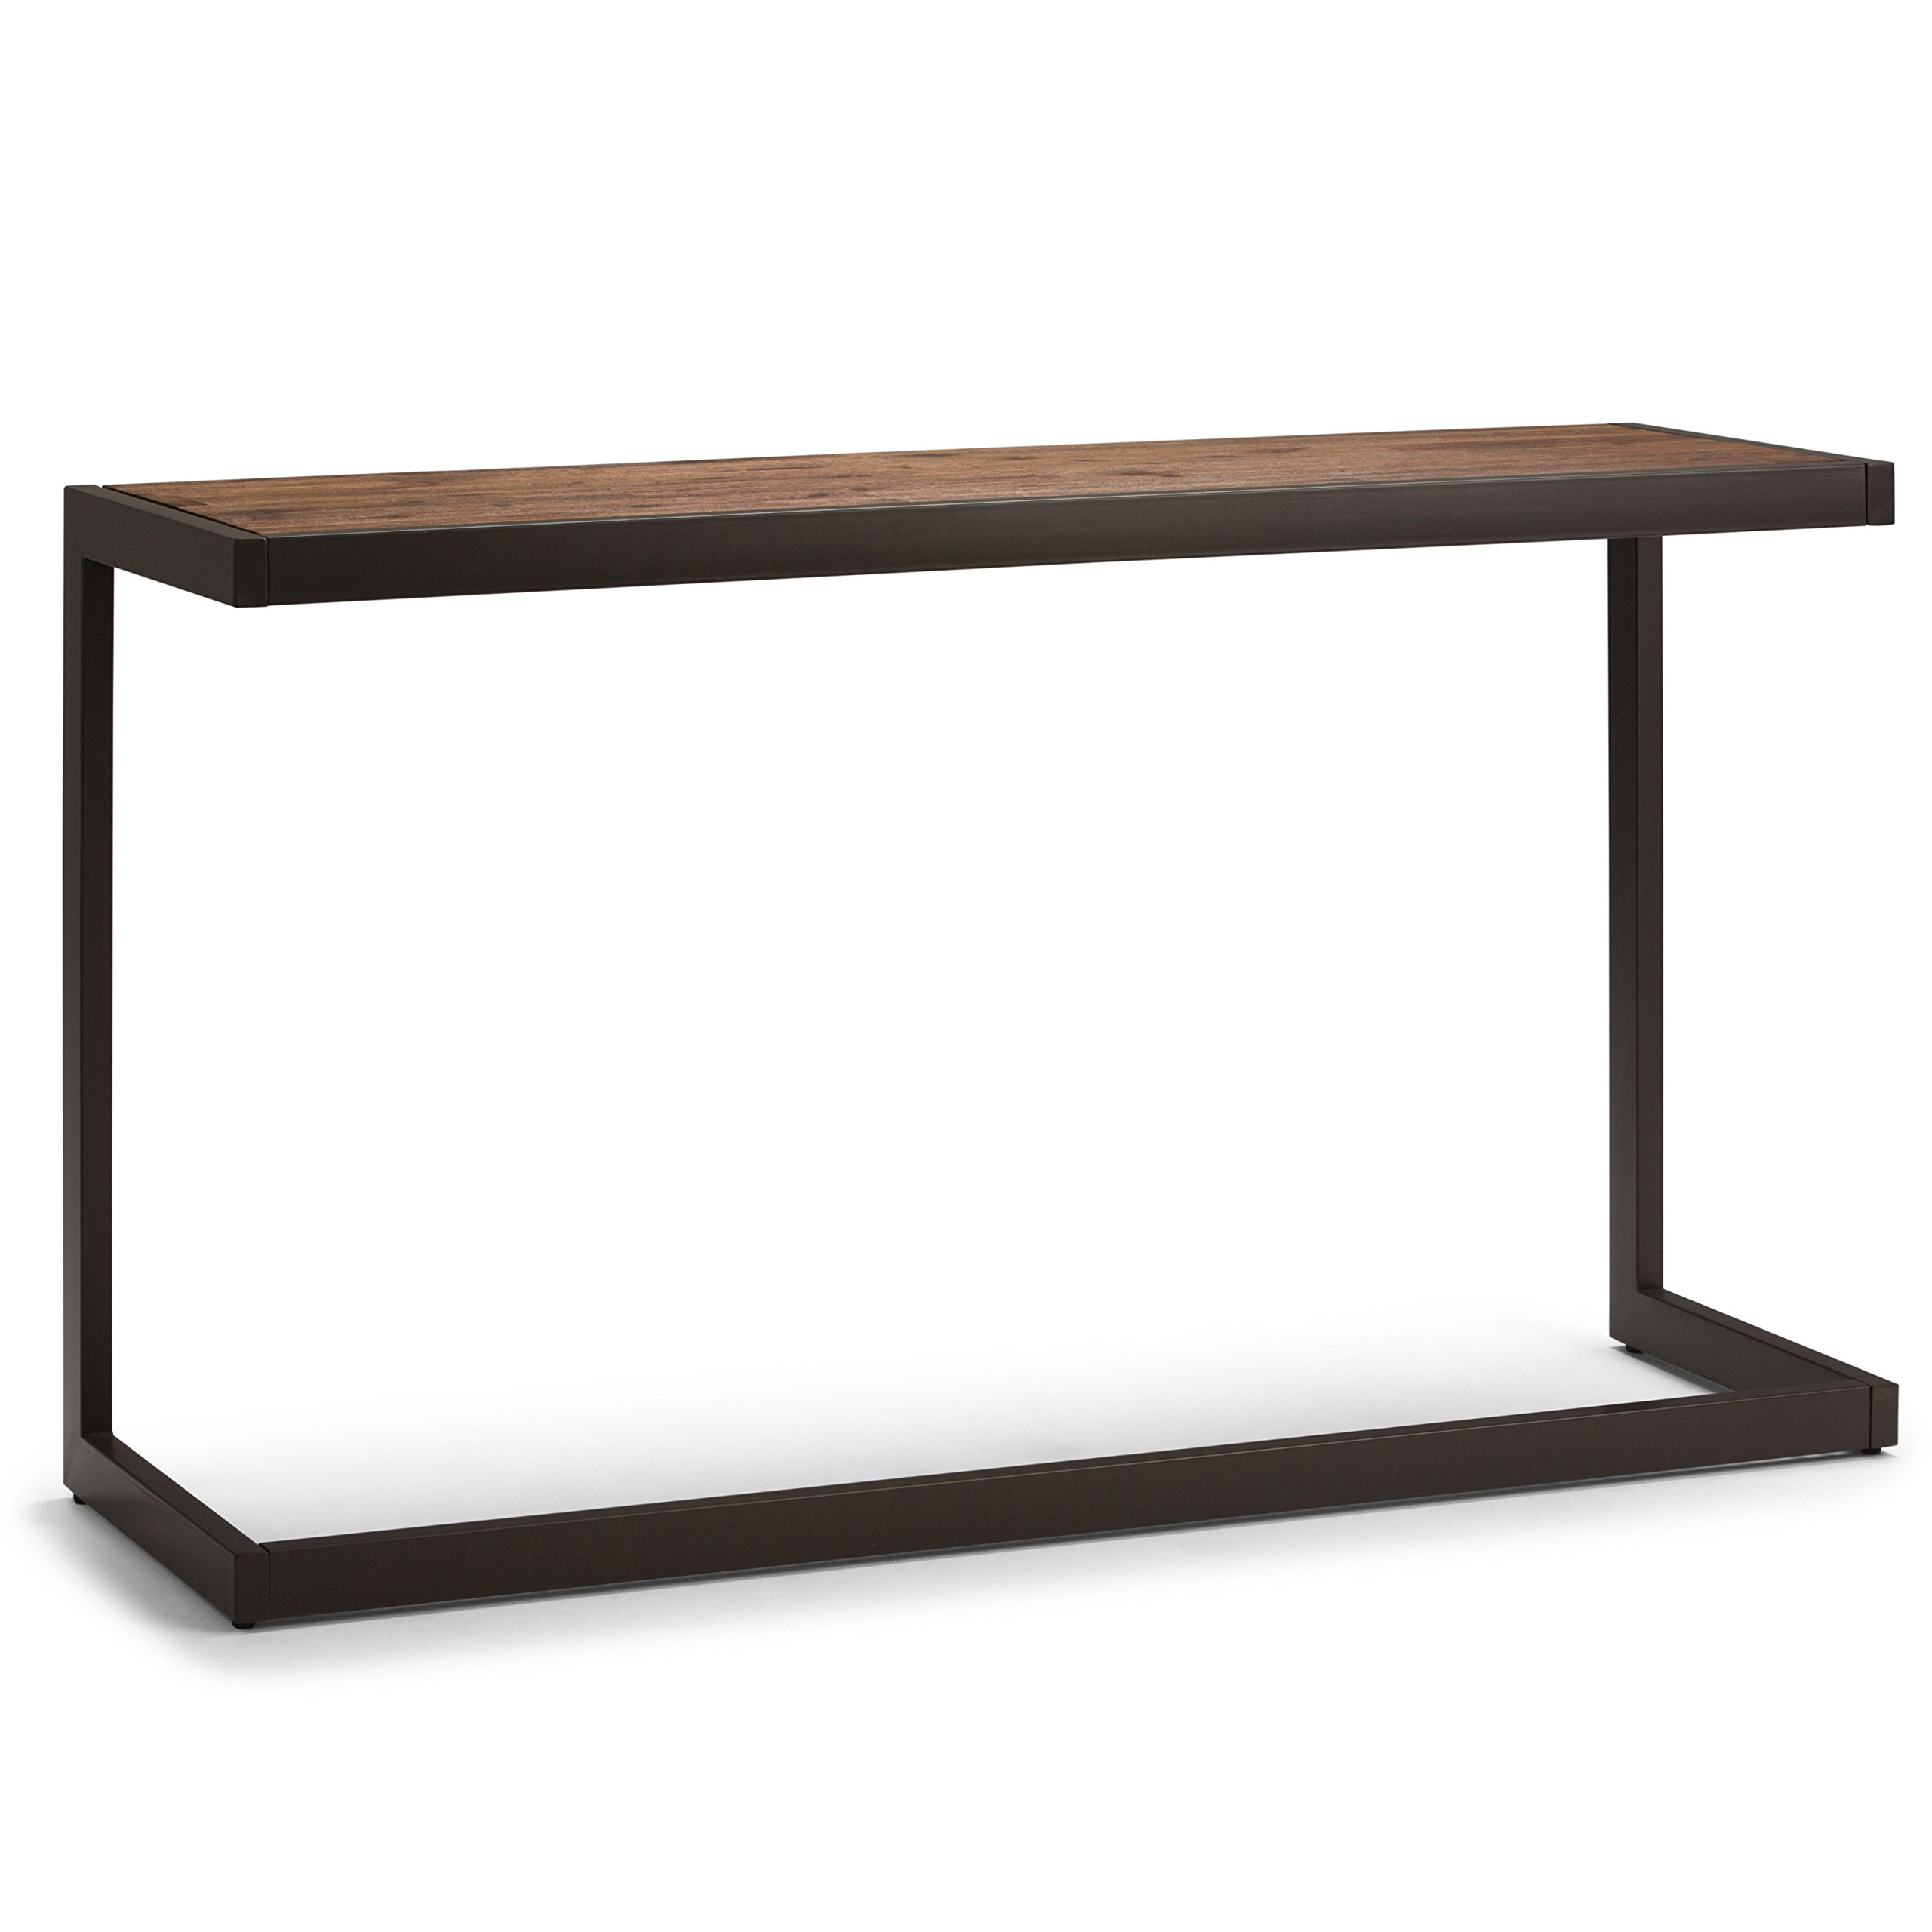 Simpli Home AXCERN-03 Erina Solid Acacia Wood and Metal 52 inch Wide Modern Industrial Console Sofa Table in Rustic Natural Aged Brown by Simpli Home